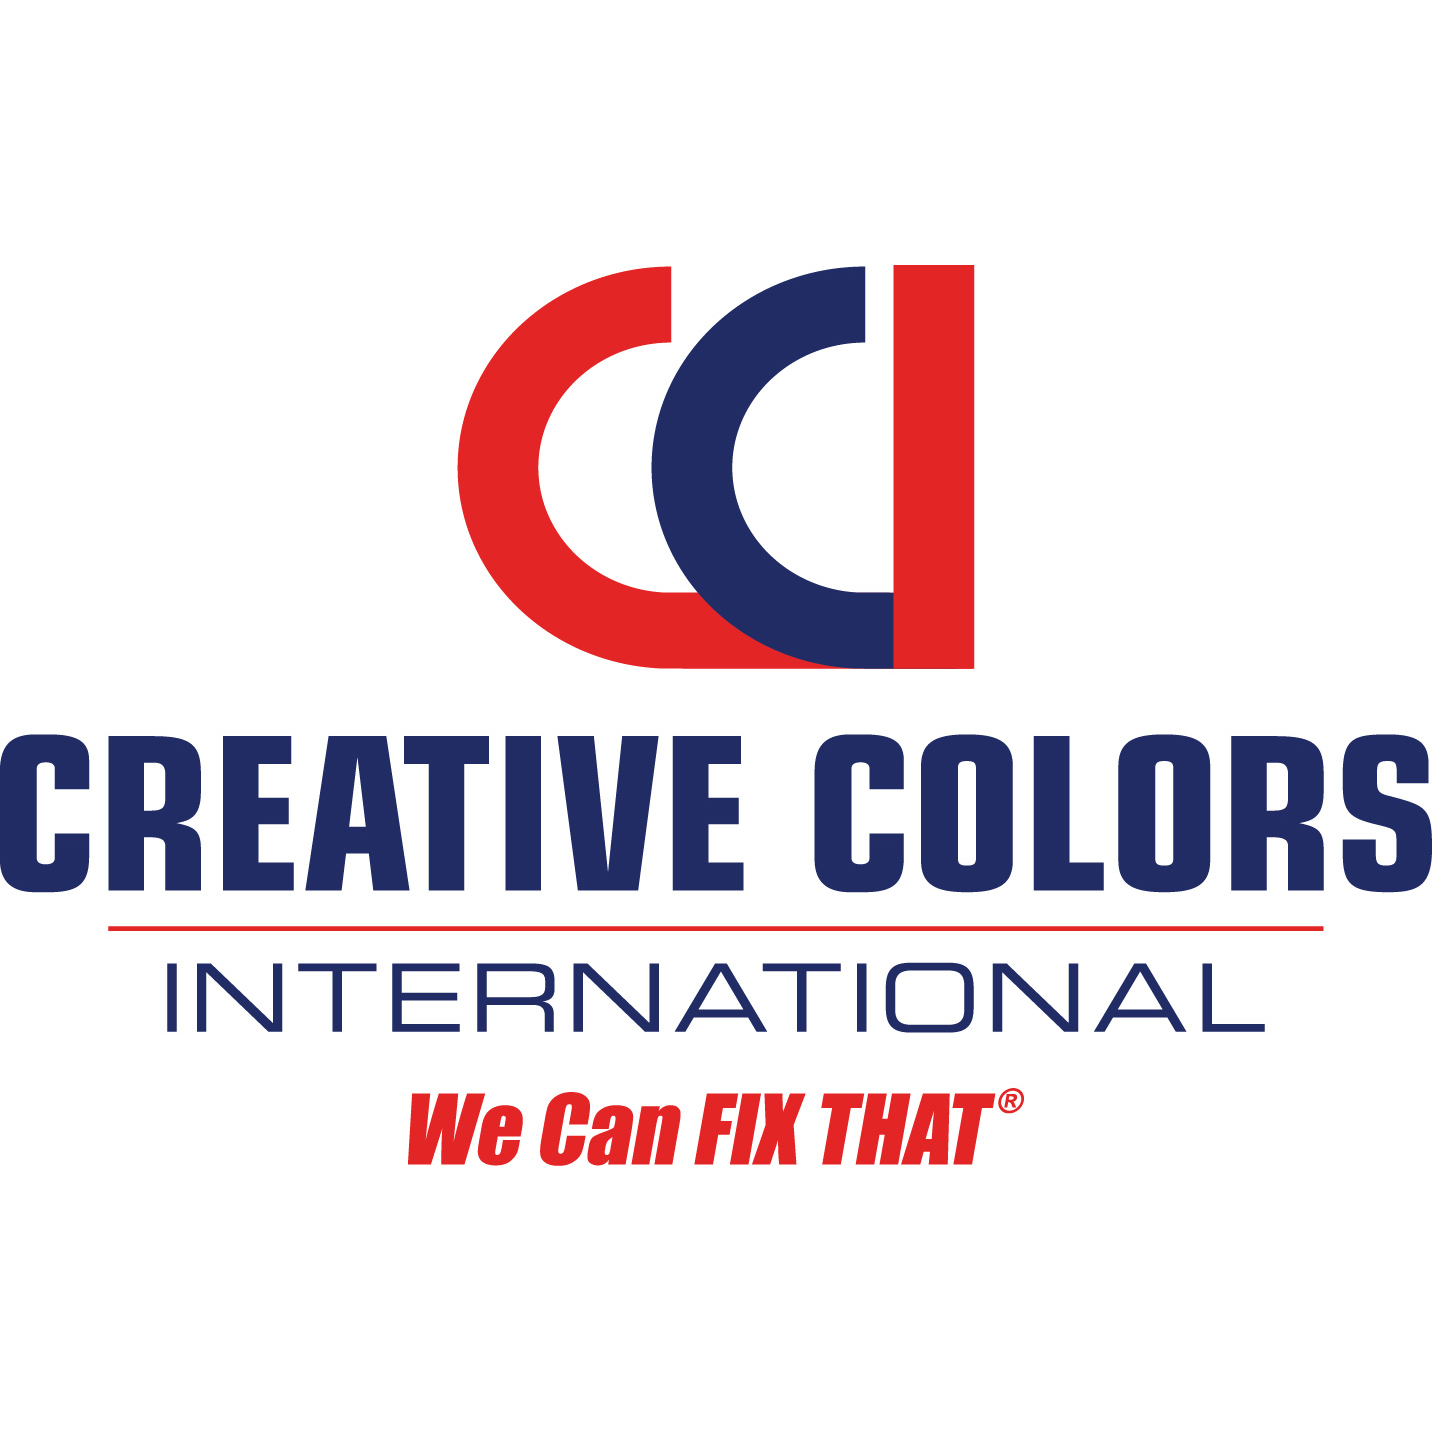 Creative Colors International-We Can Fix That - Wentzville MO